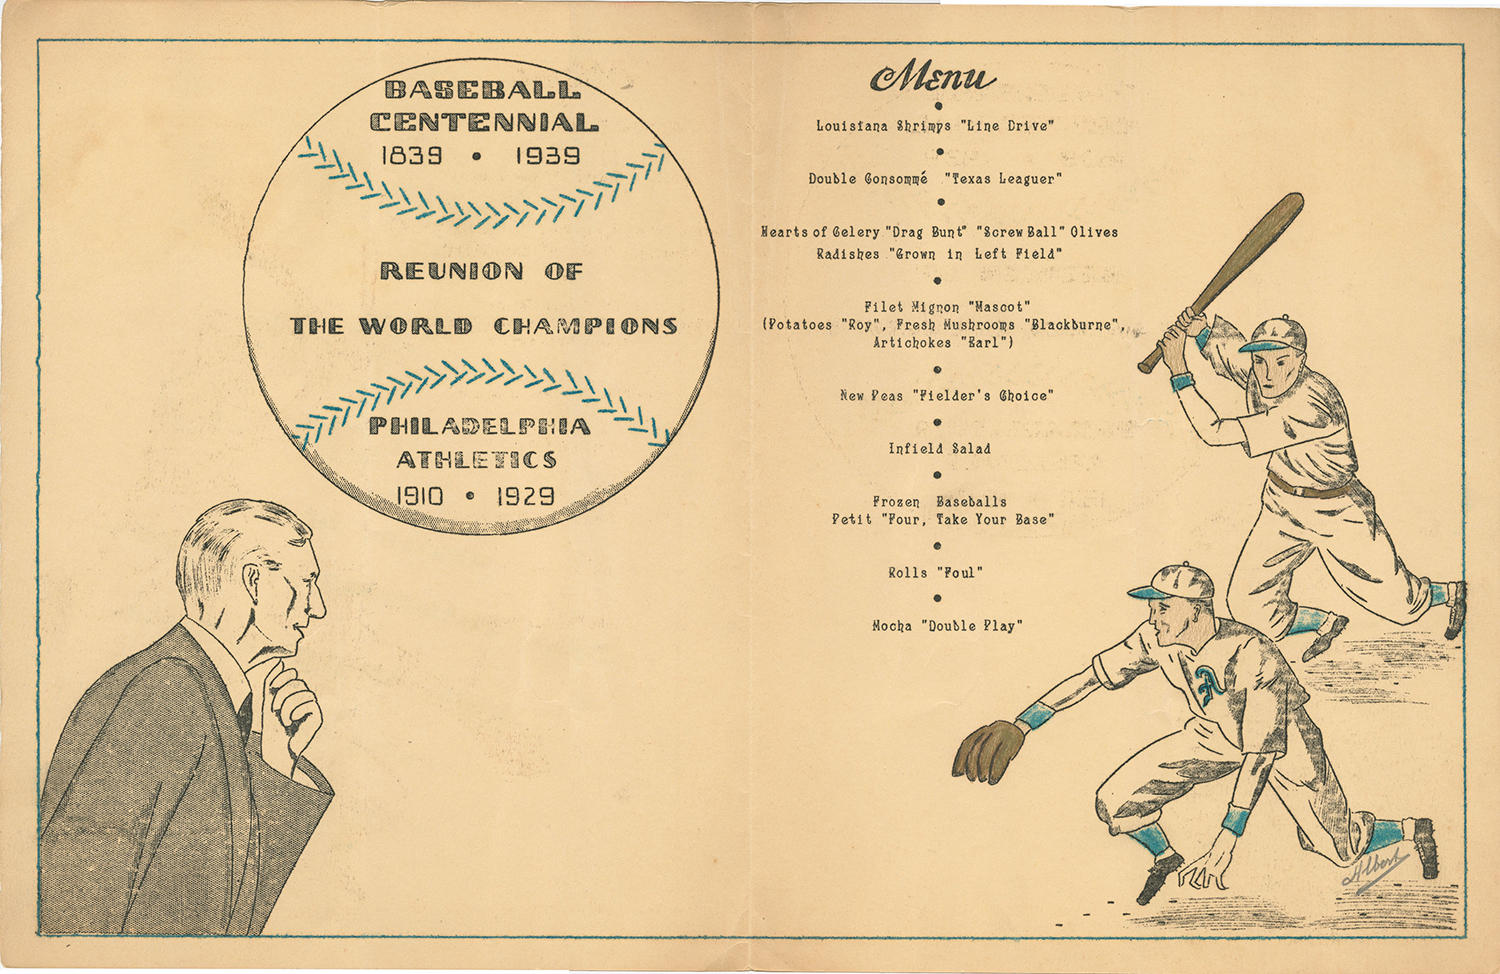 """Following their """"Reunion of World Champions,"""" the Philadelphia Athletics hosted a reunion dinner at Philadelphia's Hotel Warwick which featured a baseball-themed menu. <a href=""""https://collection.baseballhall.org/PASTIME/philadelphia-athletics-reunion-menu-1939-september-10#page/1/mode/1up"""">PASTIME</a> (National Baseball Hall of Fame and Museum)"""